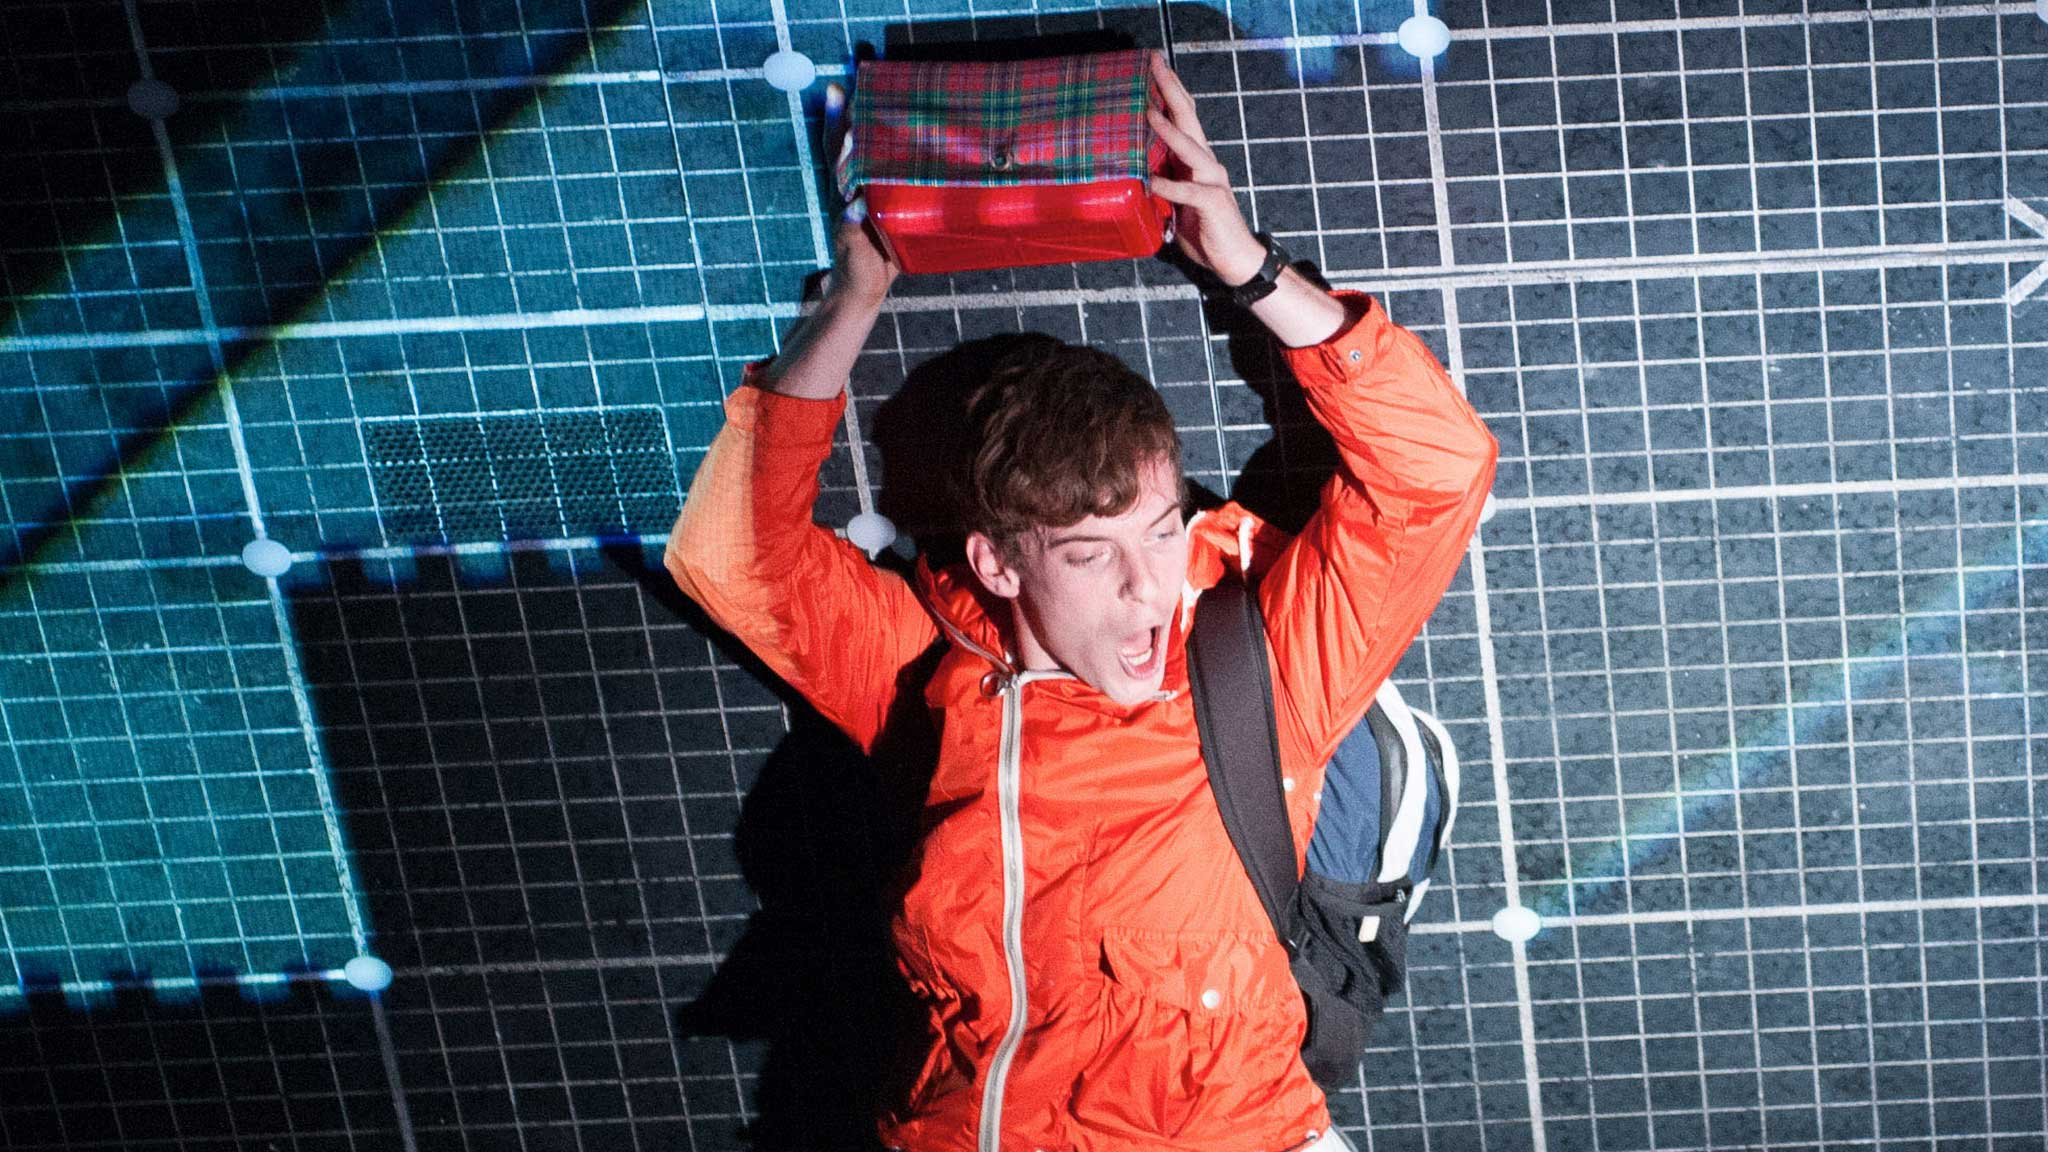 The Curious Incident Of The Dog In The Nighttime National Theatre  The Curious Incident Of The Dog In The Nighttime National Theatre London   Financial Times Essay Topics High School also Essay Topics For Research Paper  Modern Science Essay